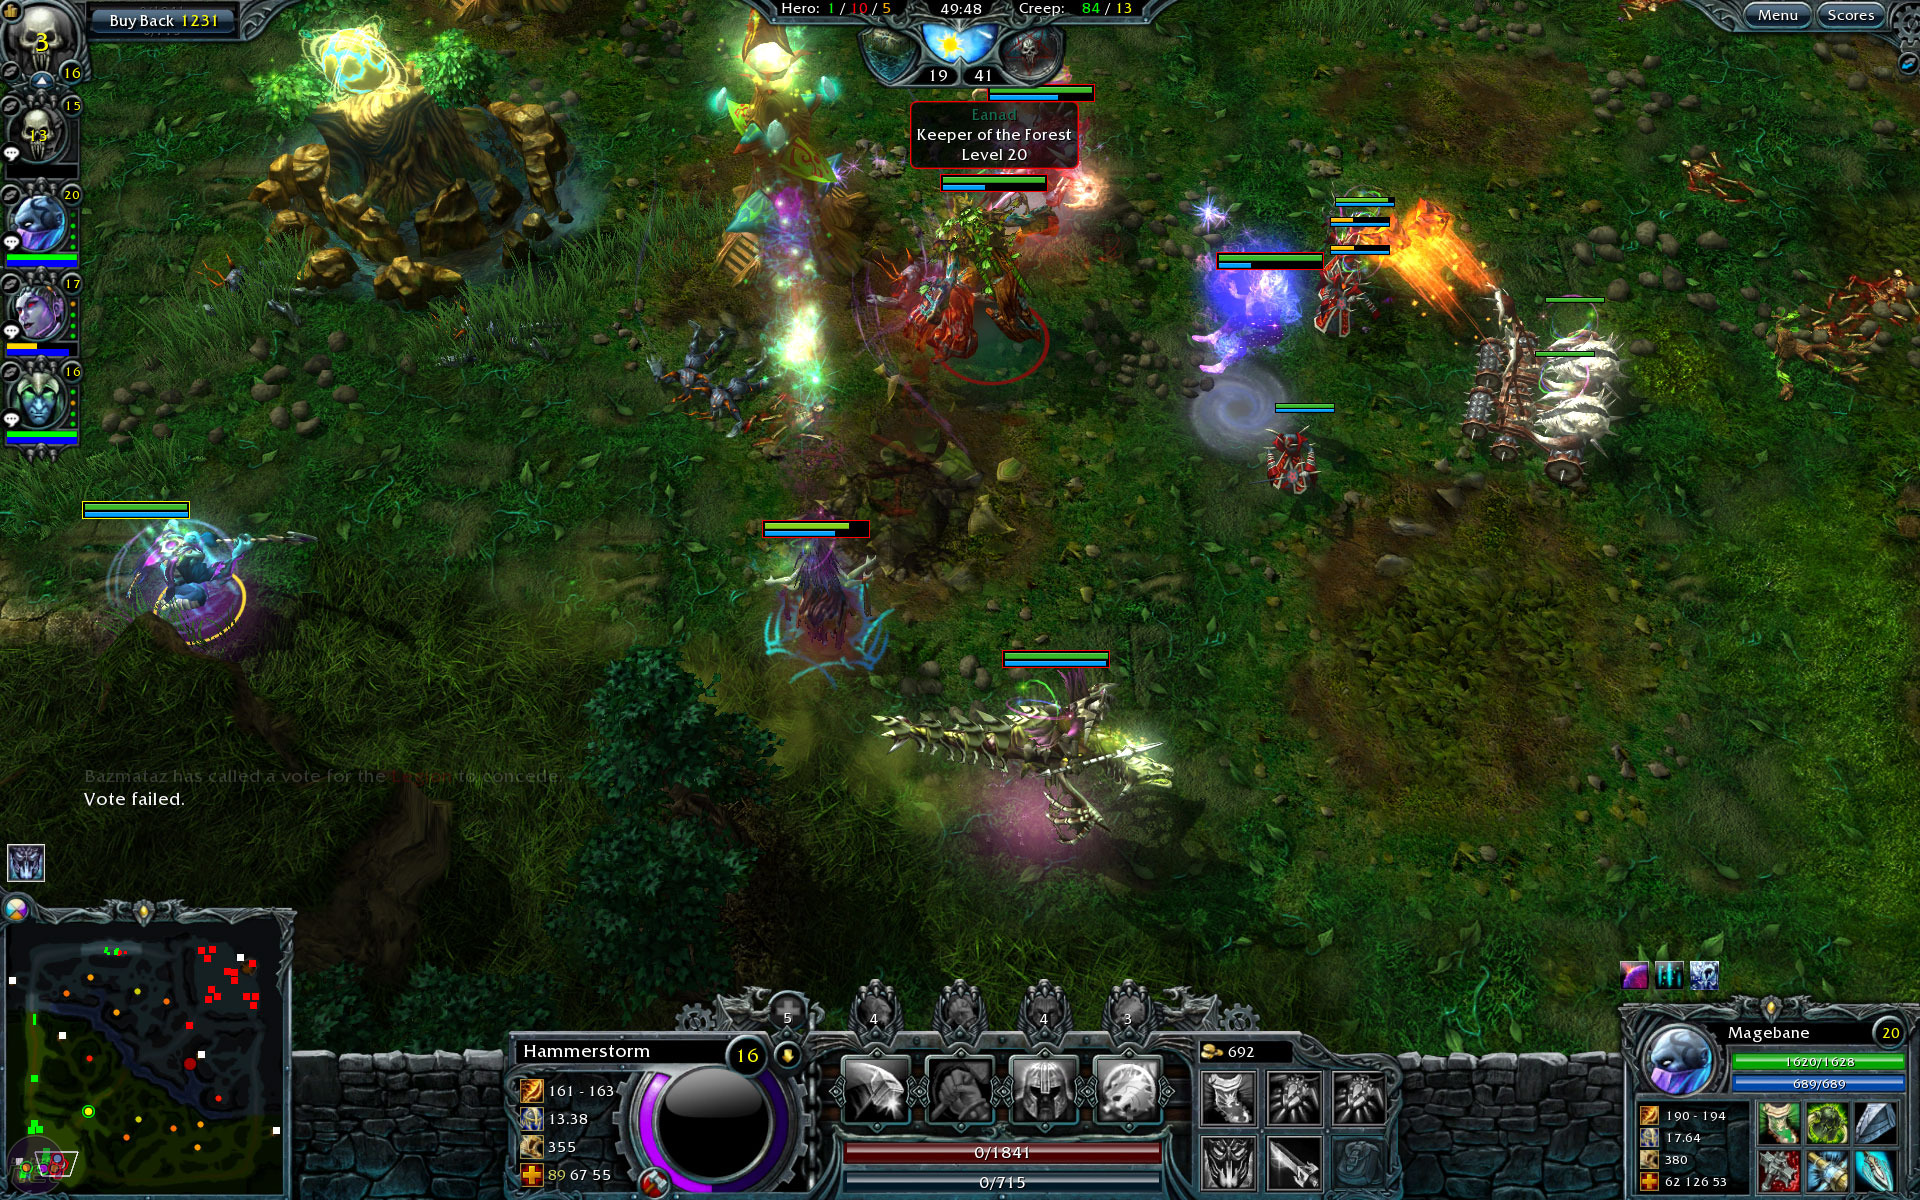 heroes of newerth review bit tech net